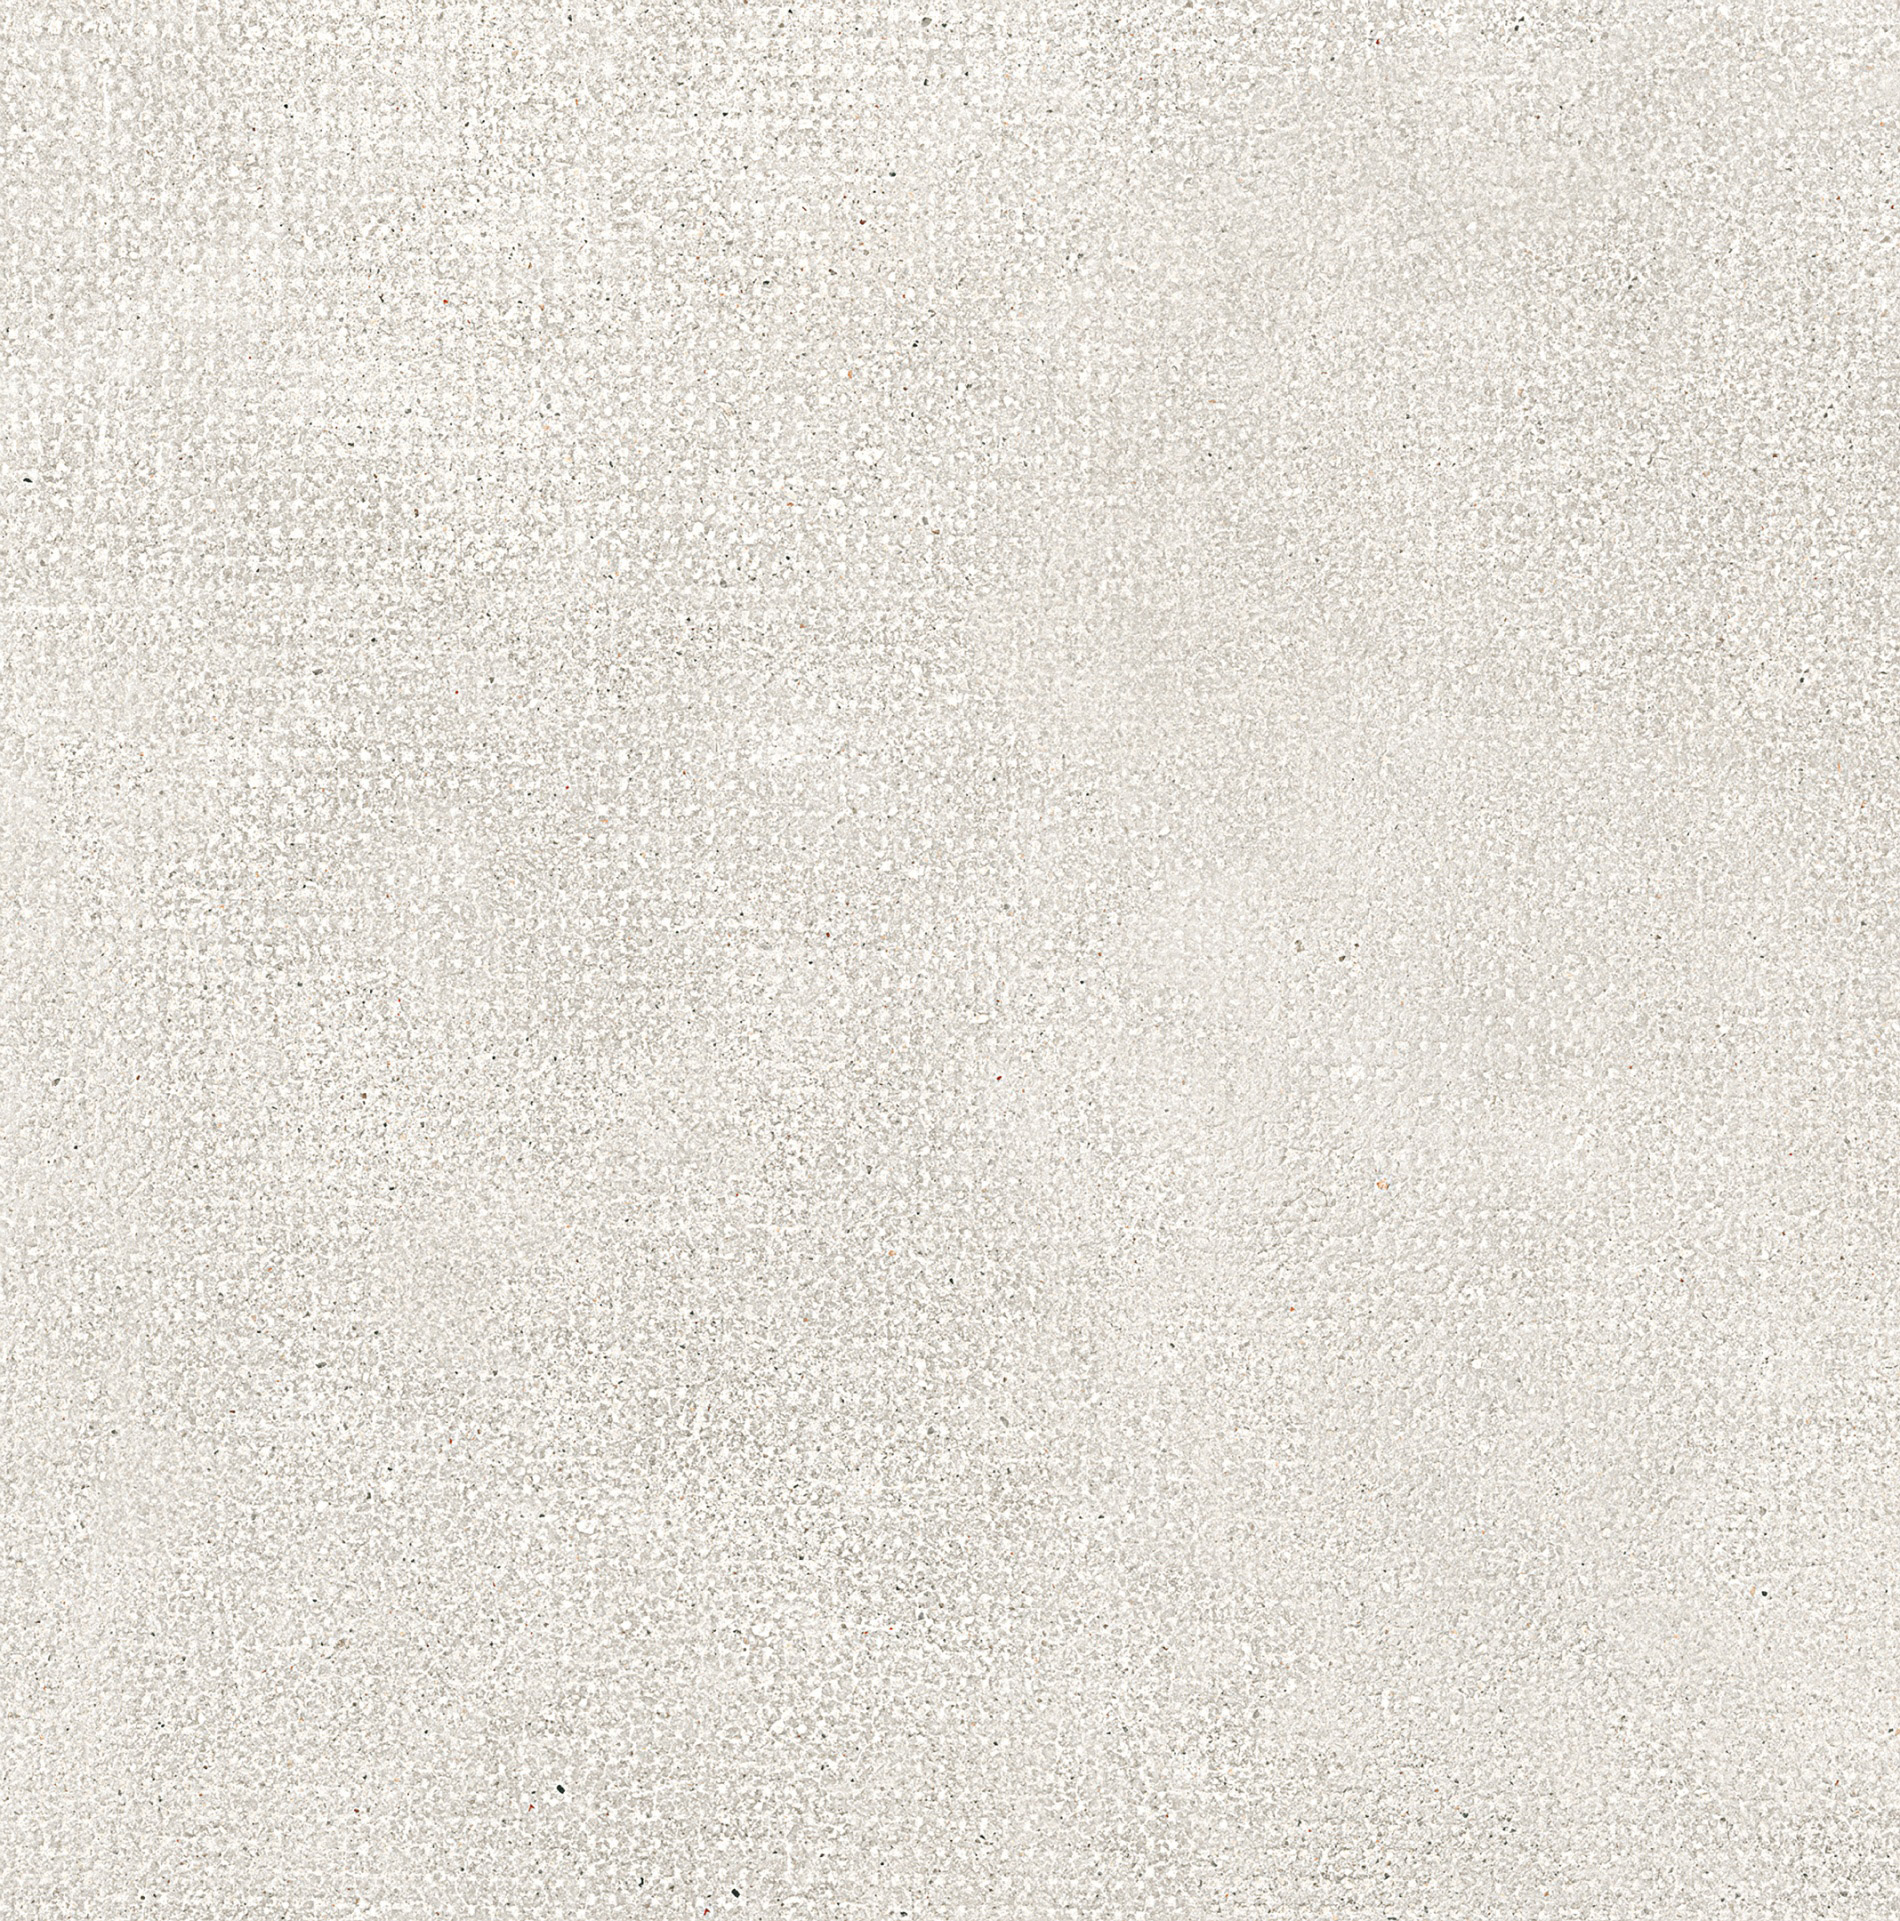 Bianco Calce - Texture porcelain tile from our Graffiti Tile ...